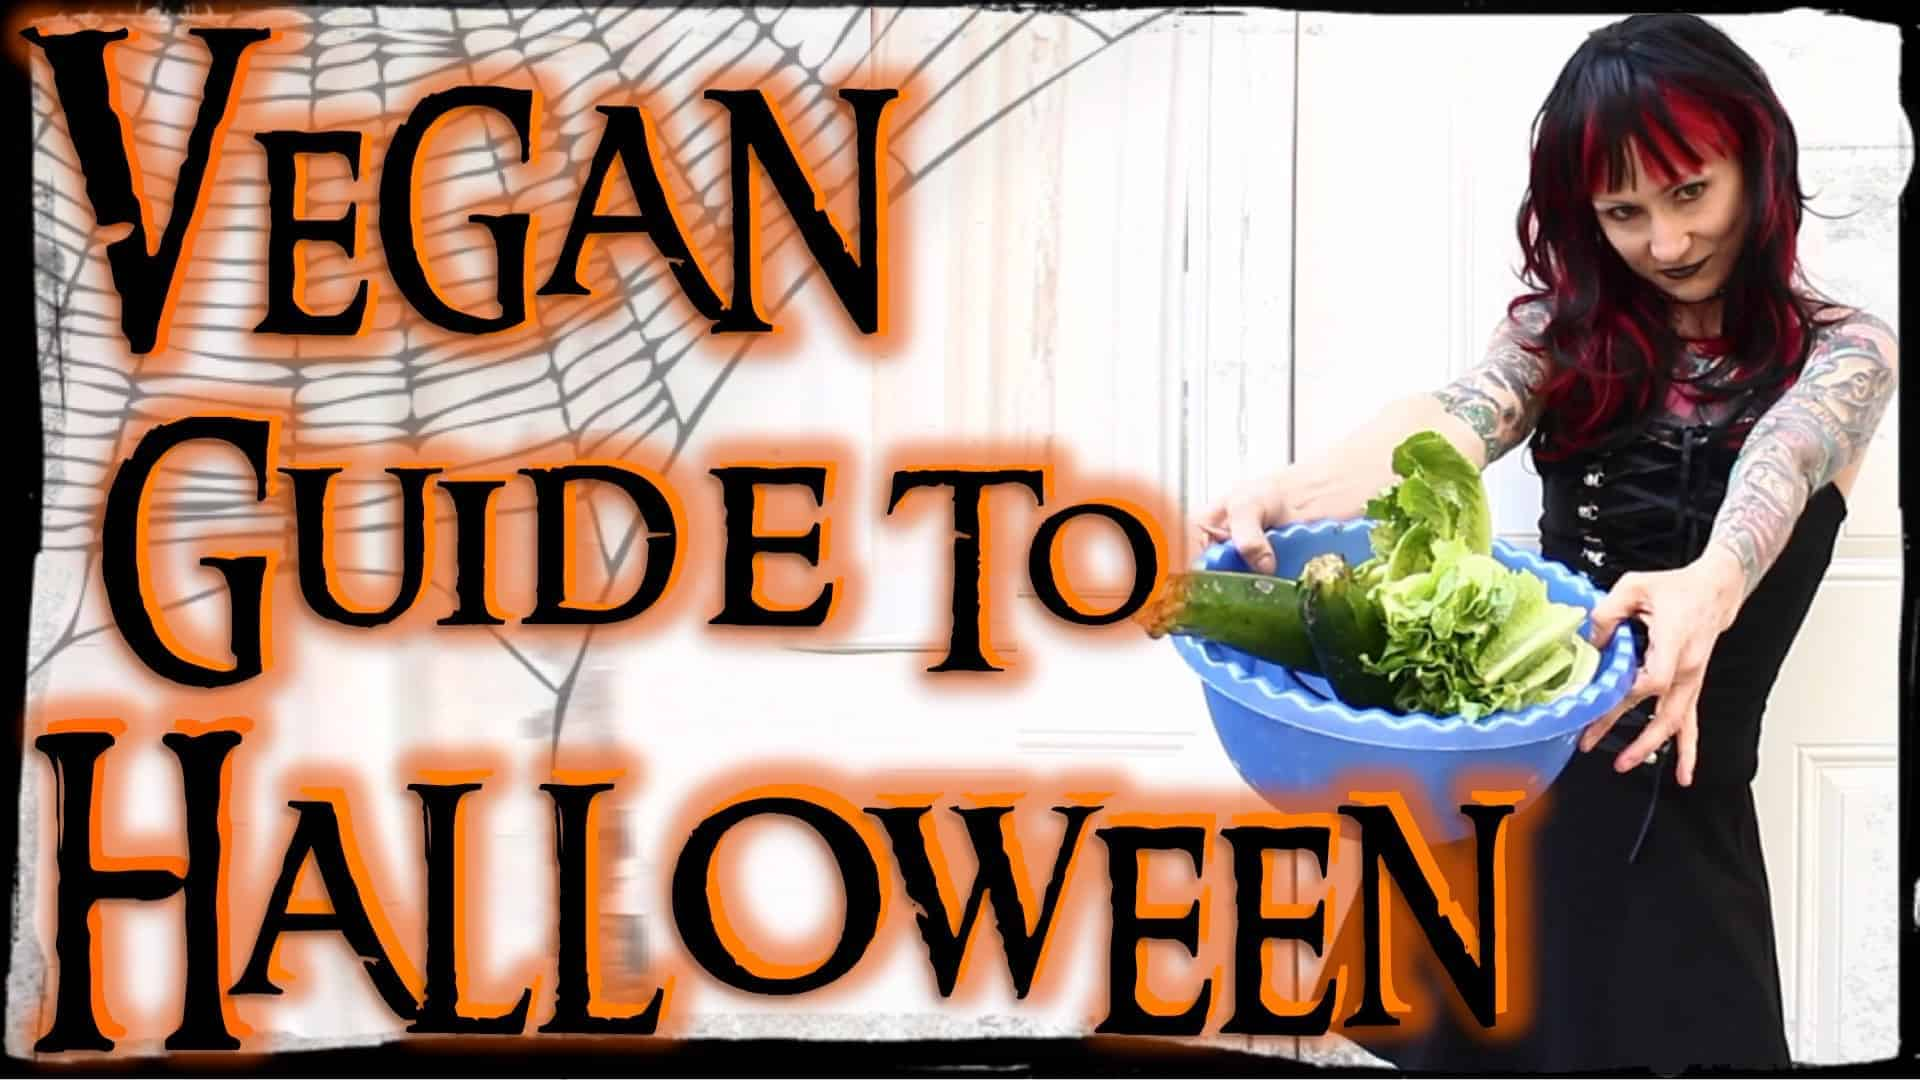 Emily dressed up as a zombie holding a tray of vegetables with the words Vegan guide to Halloween in orange